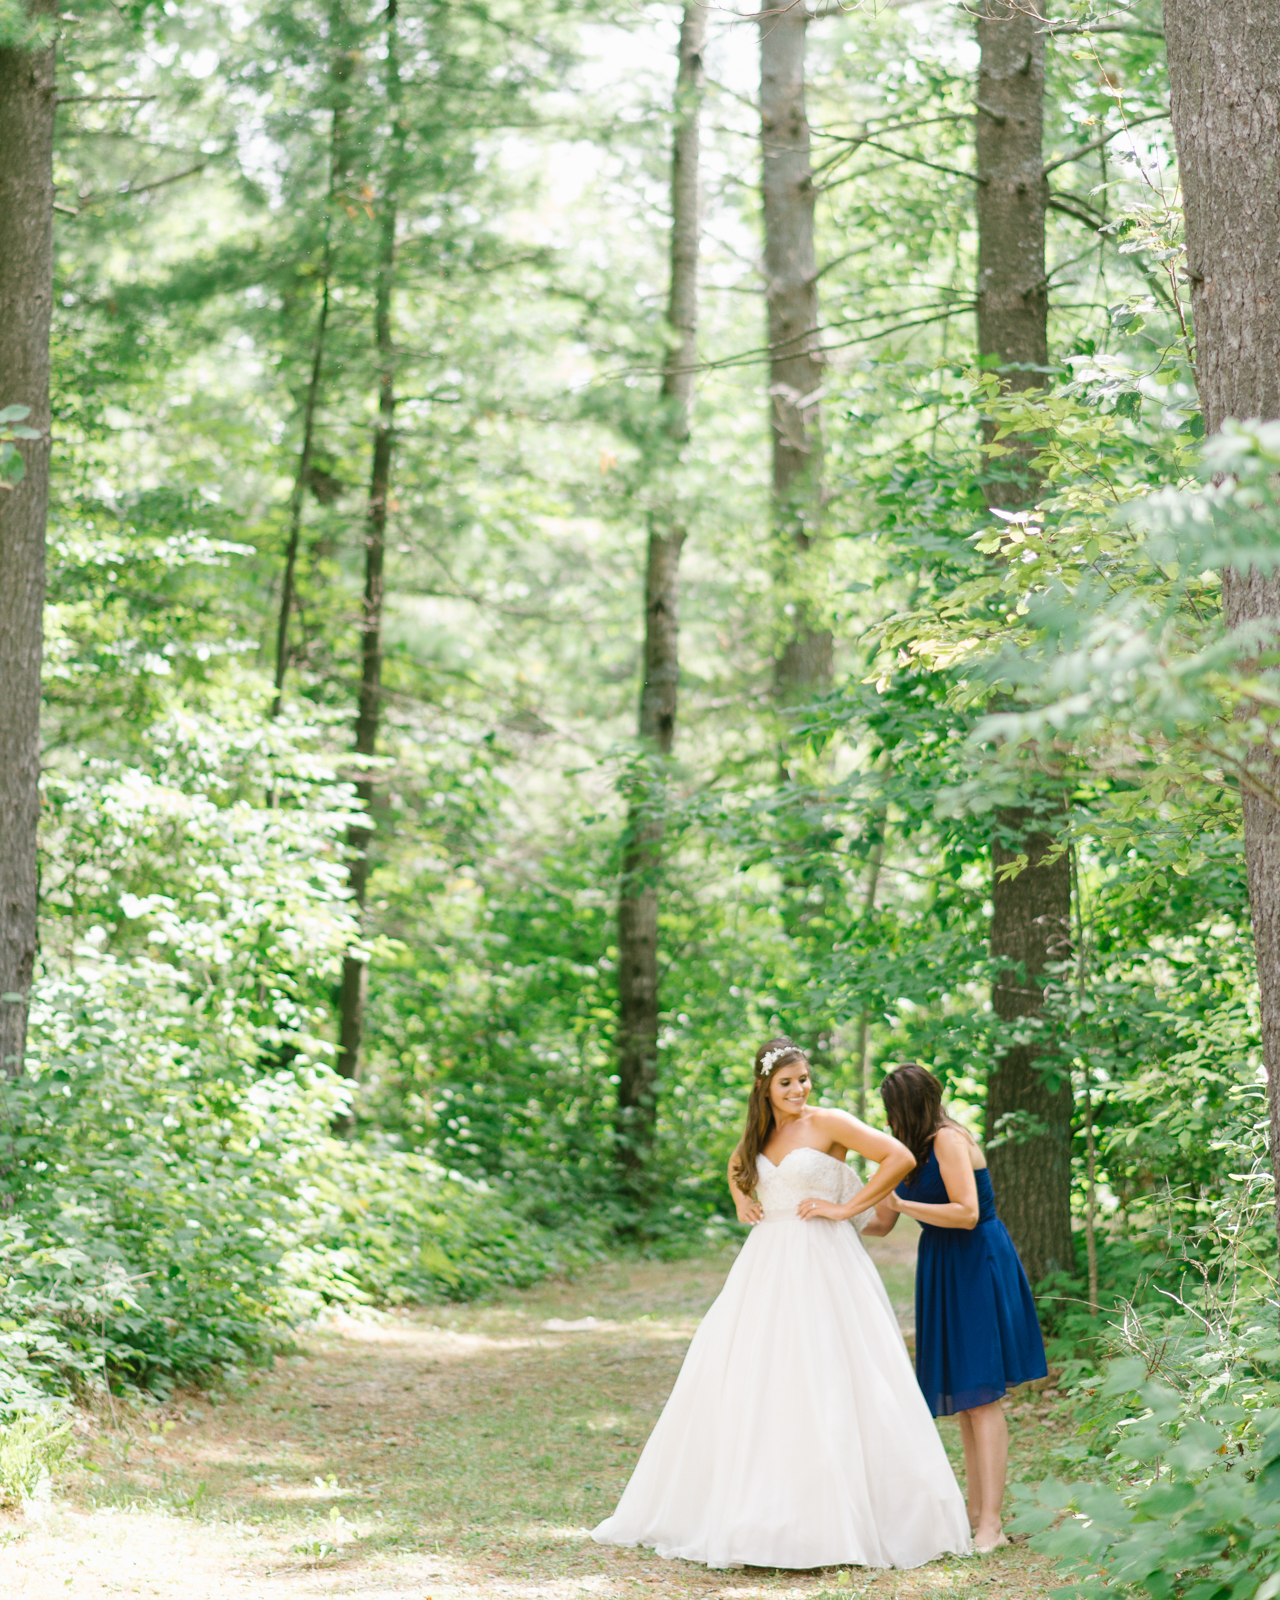 tara mcmullen photography muskoka wedding photographer st peters on the rock wedding photos muskoka wedding photos where to get married in muskoka camp ooch wedding-006